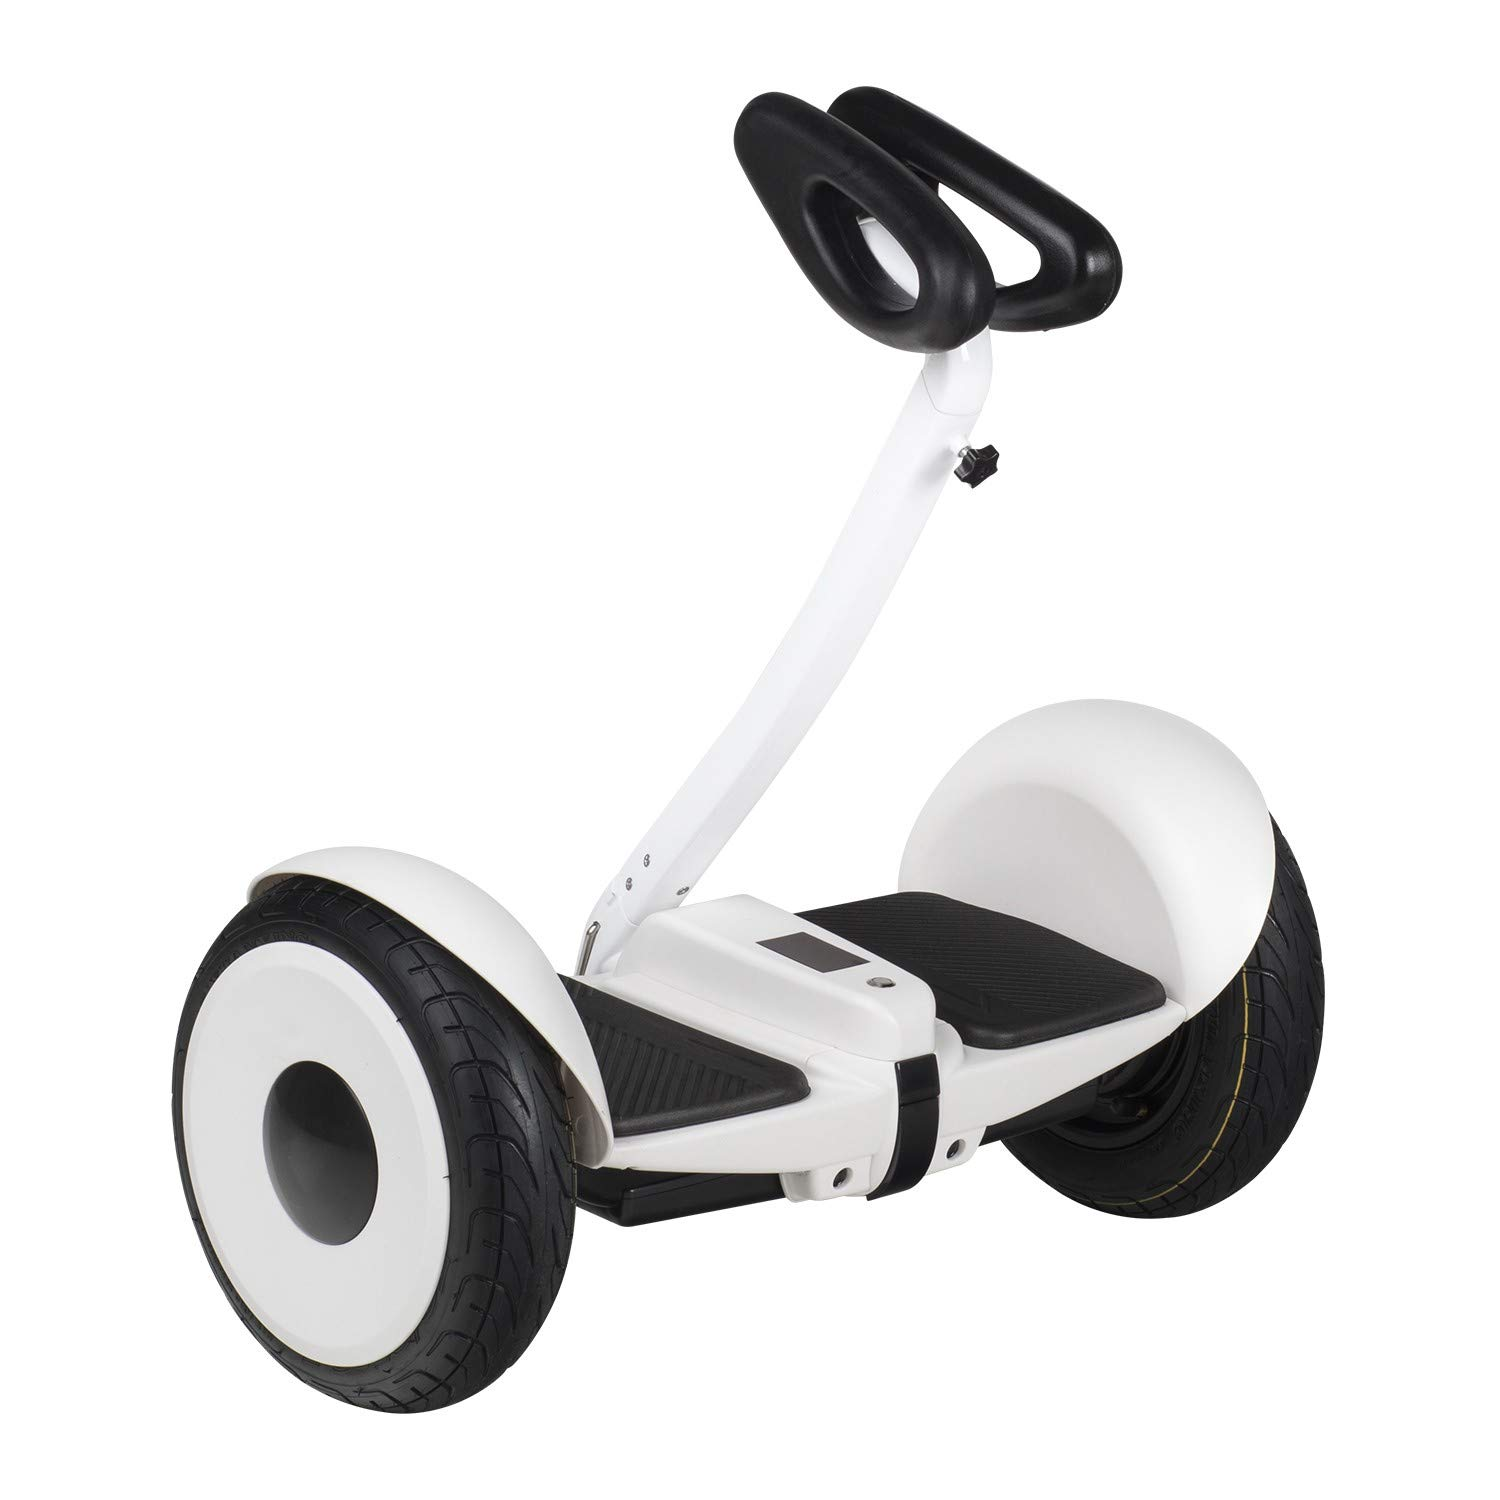 iwatBoard iWay Lite White Transporte Personal Scooter ...